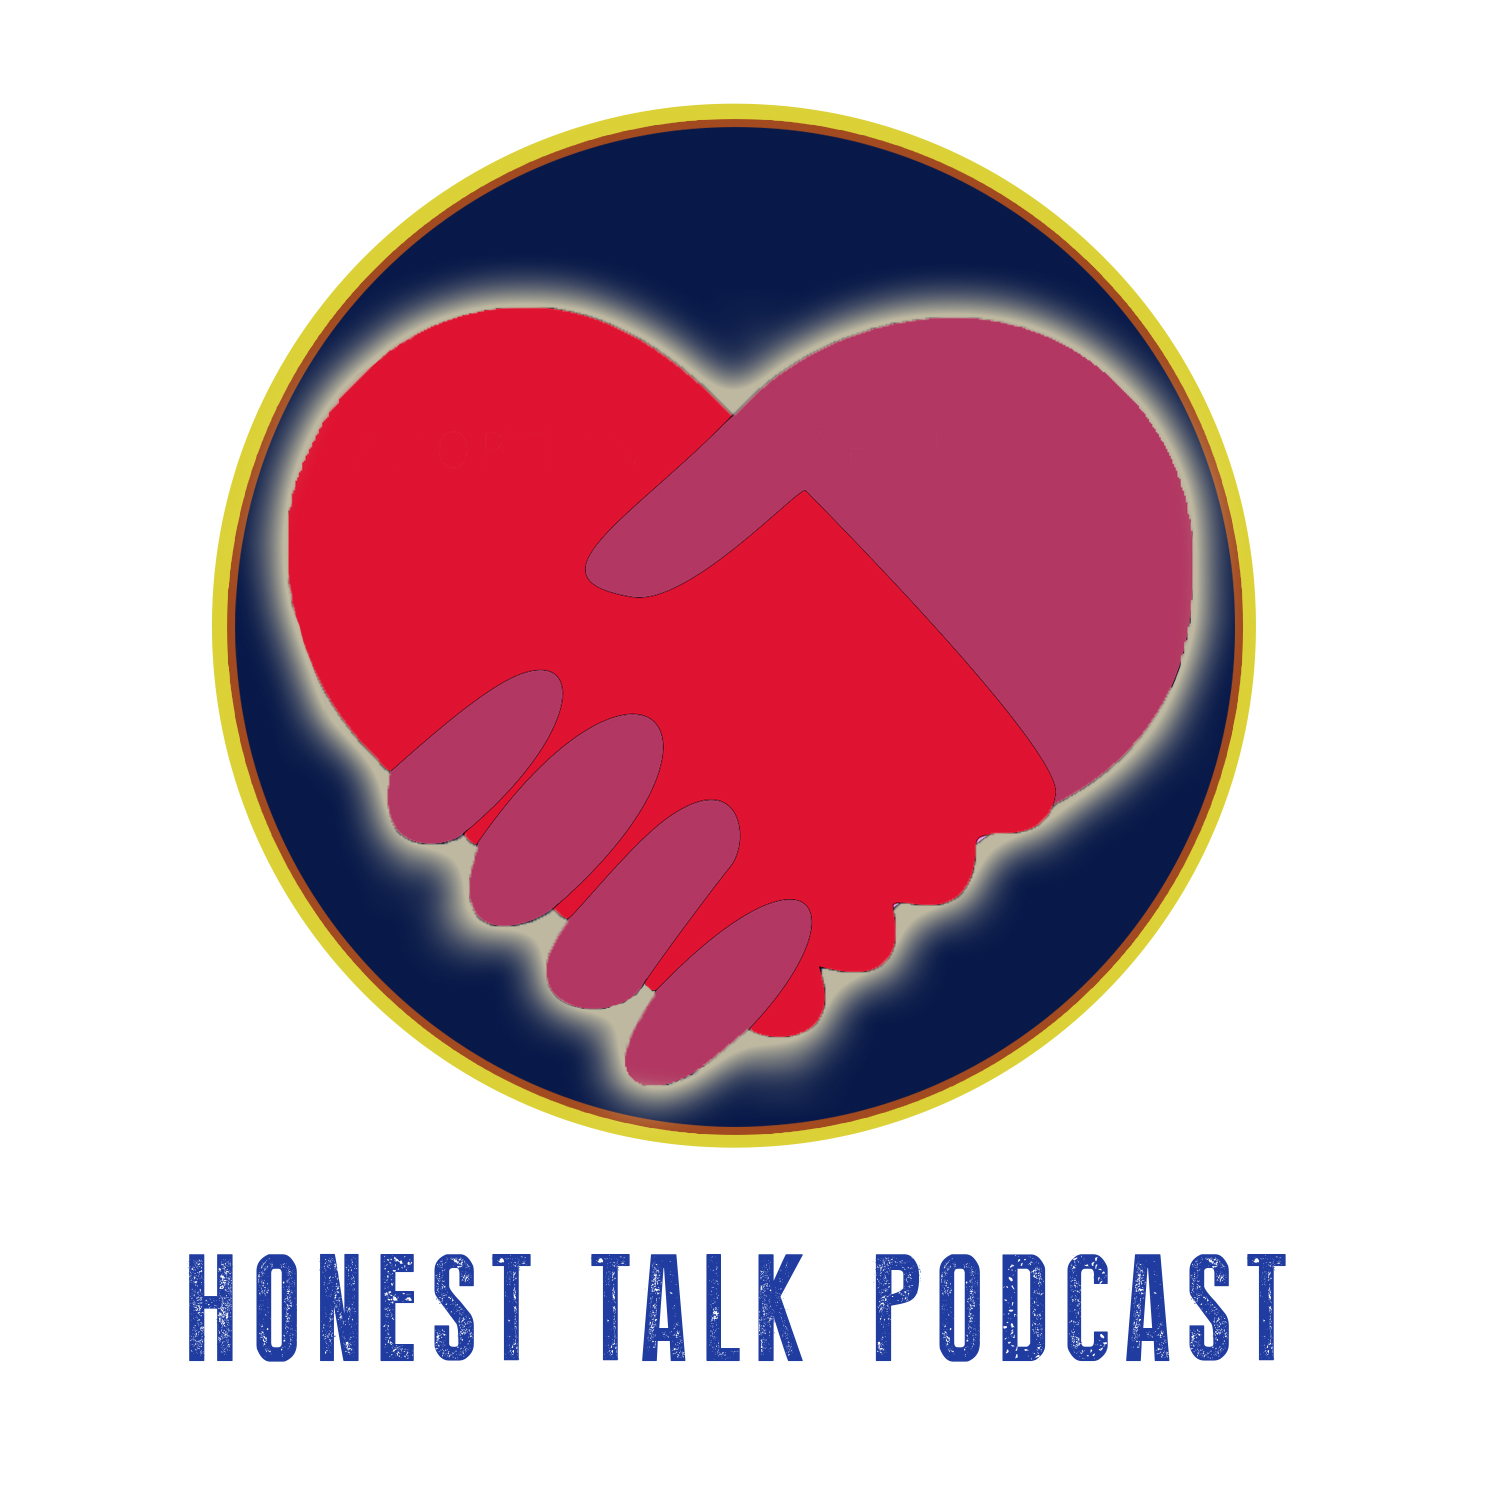 Honest Talk Podcast